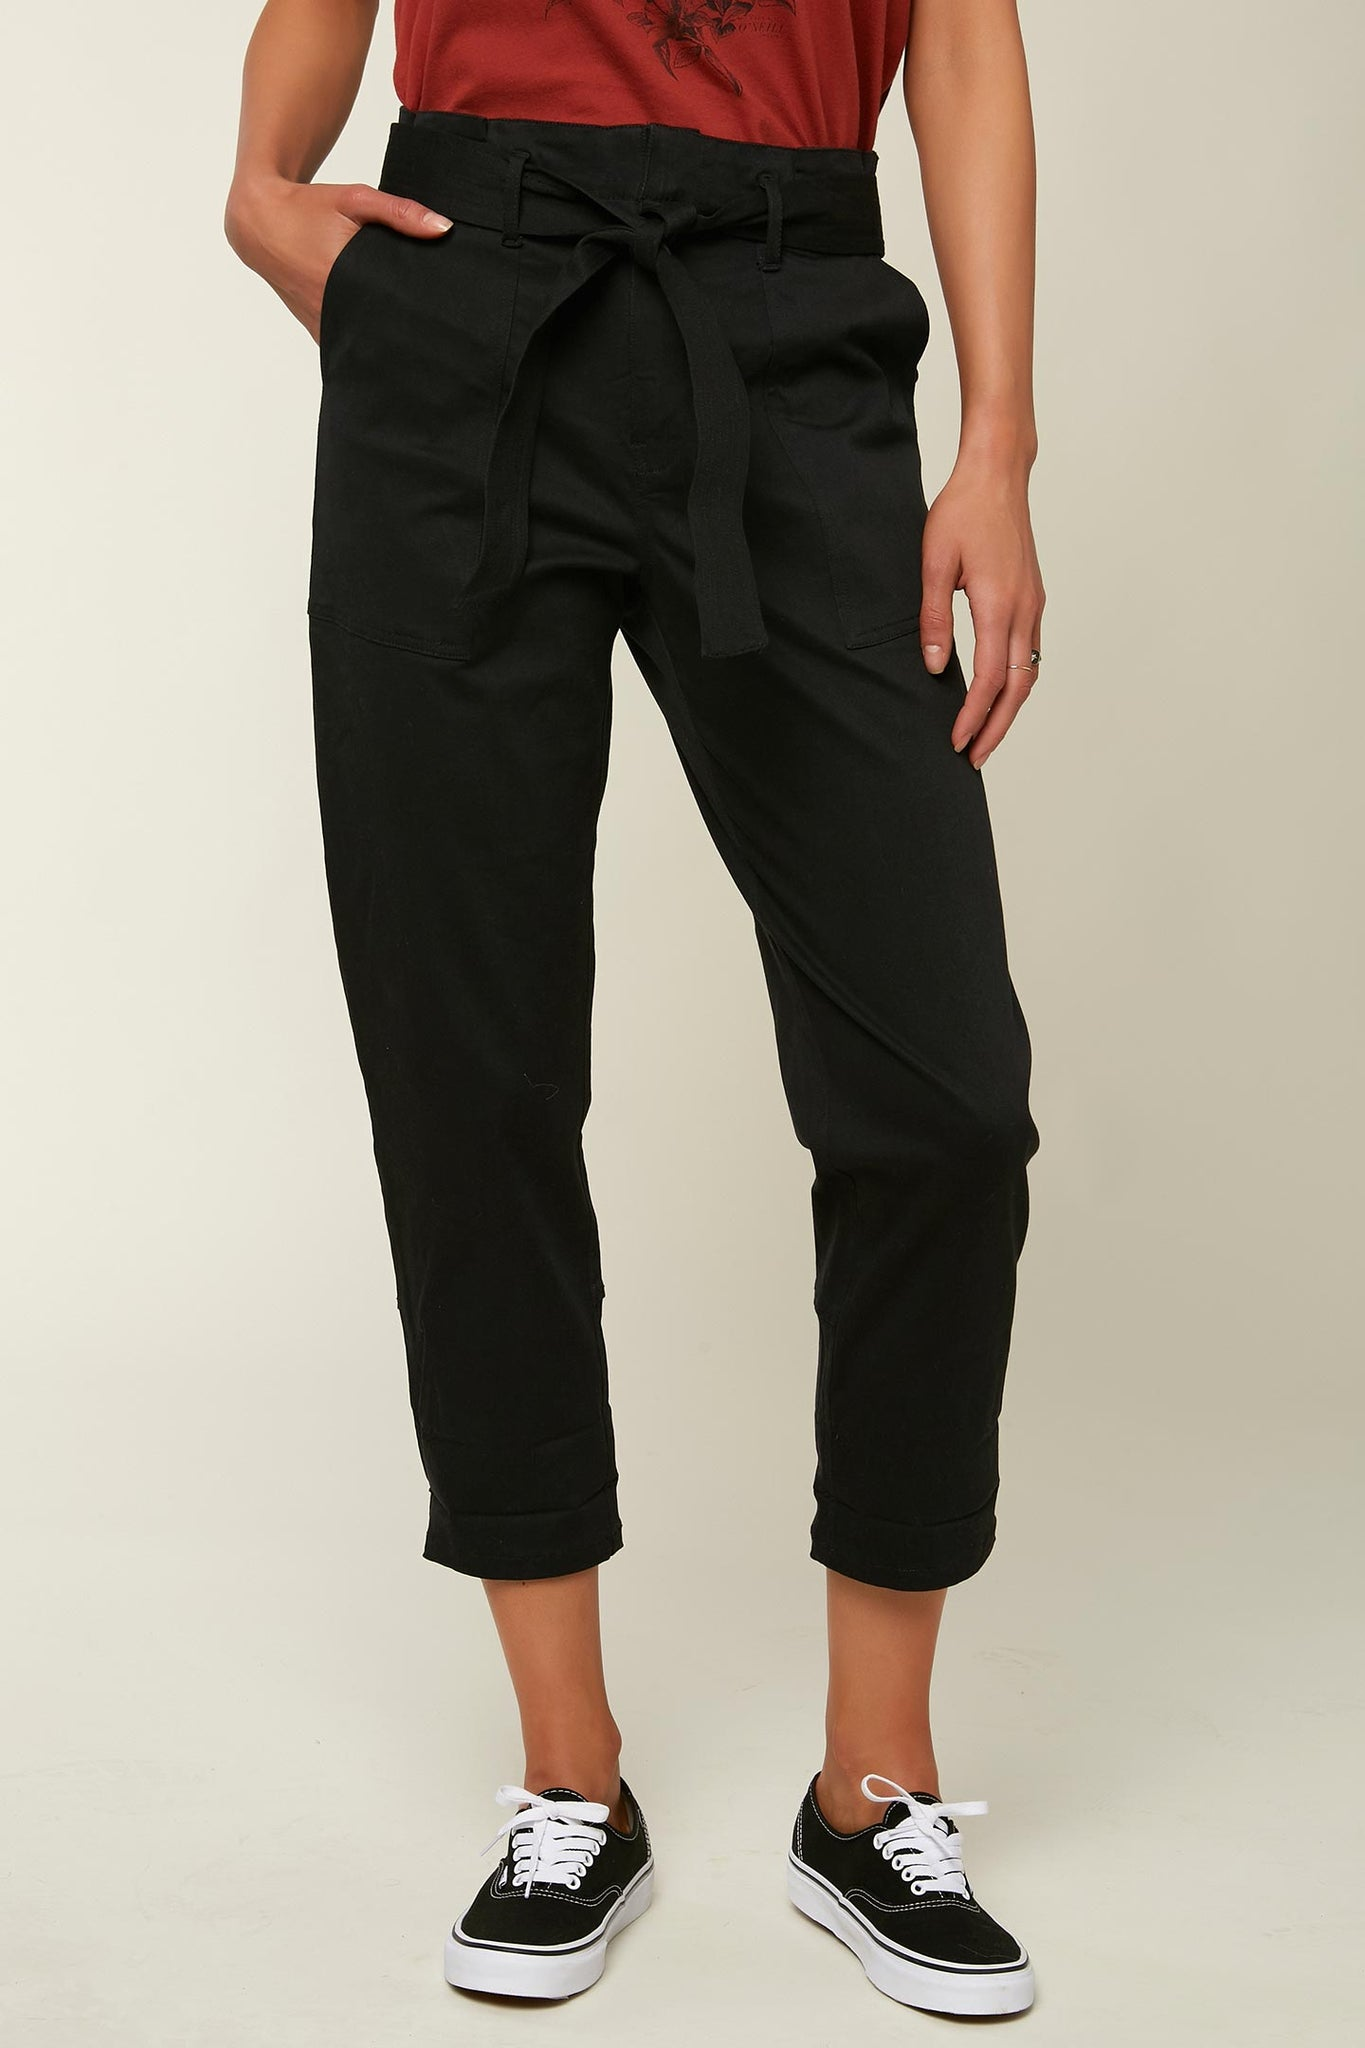 Dillon Pants - Washed Black | O'Neill